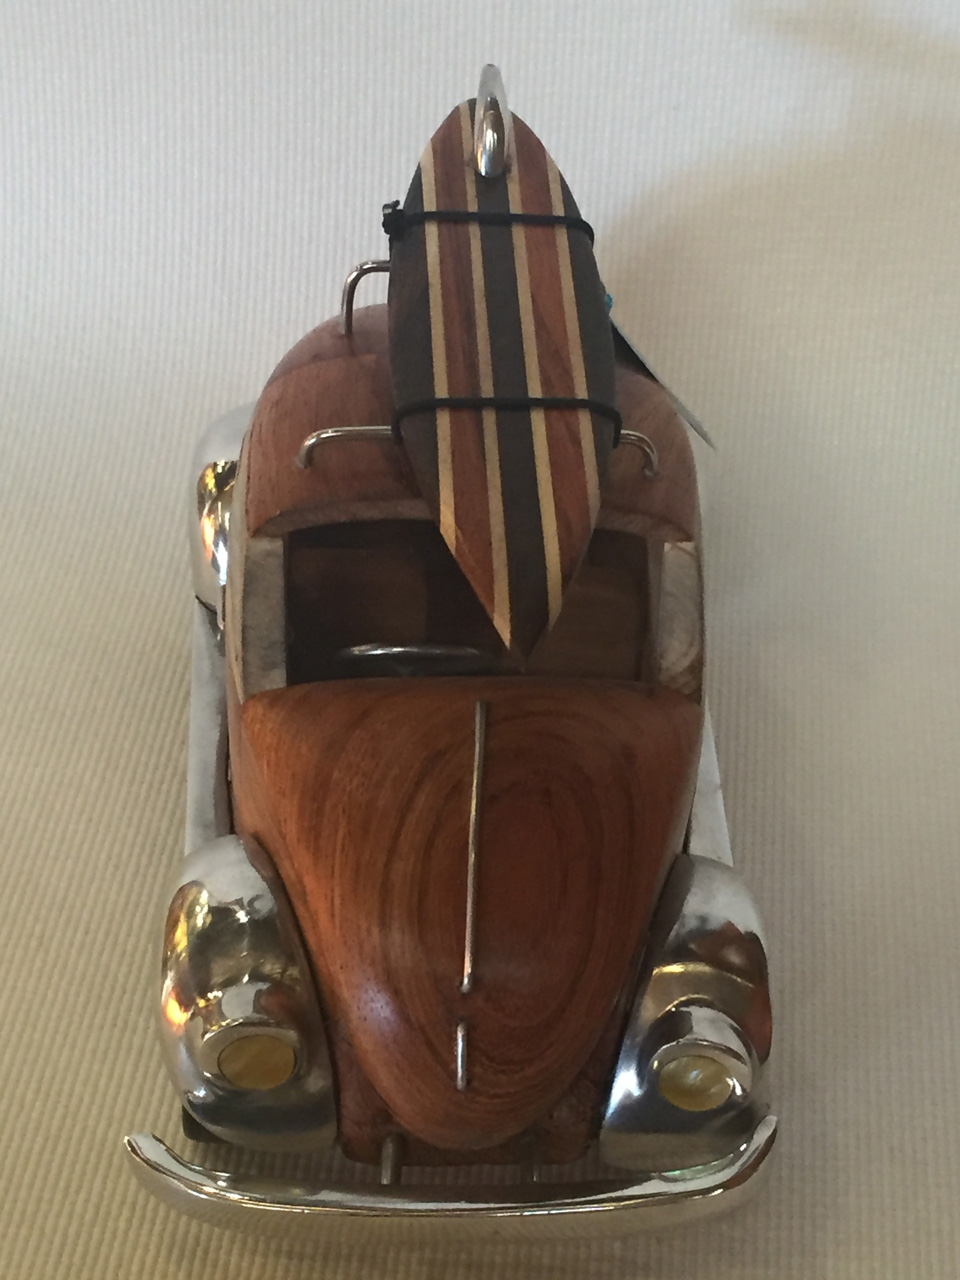 VW Bug by Doug Miller wood and metal model with surfboard